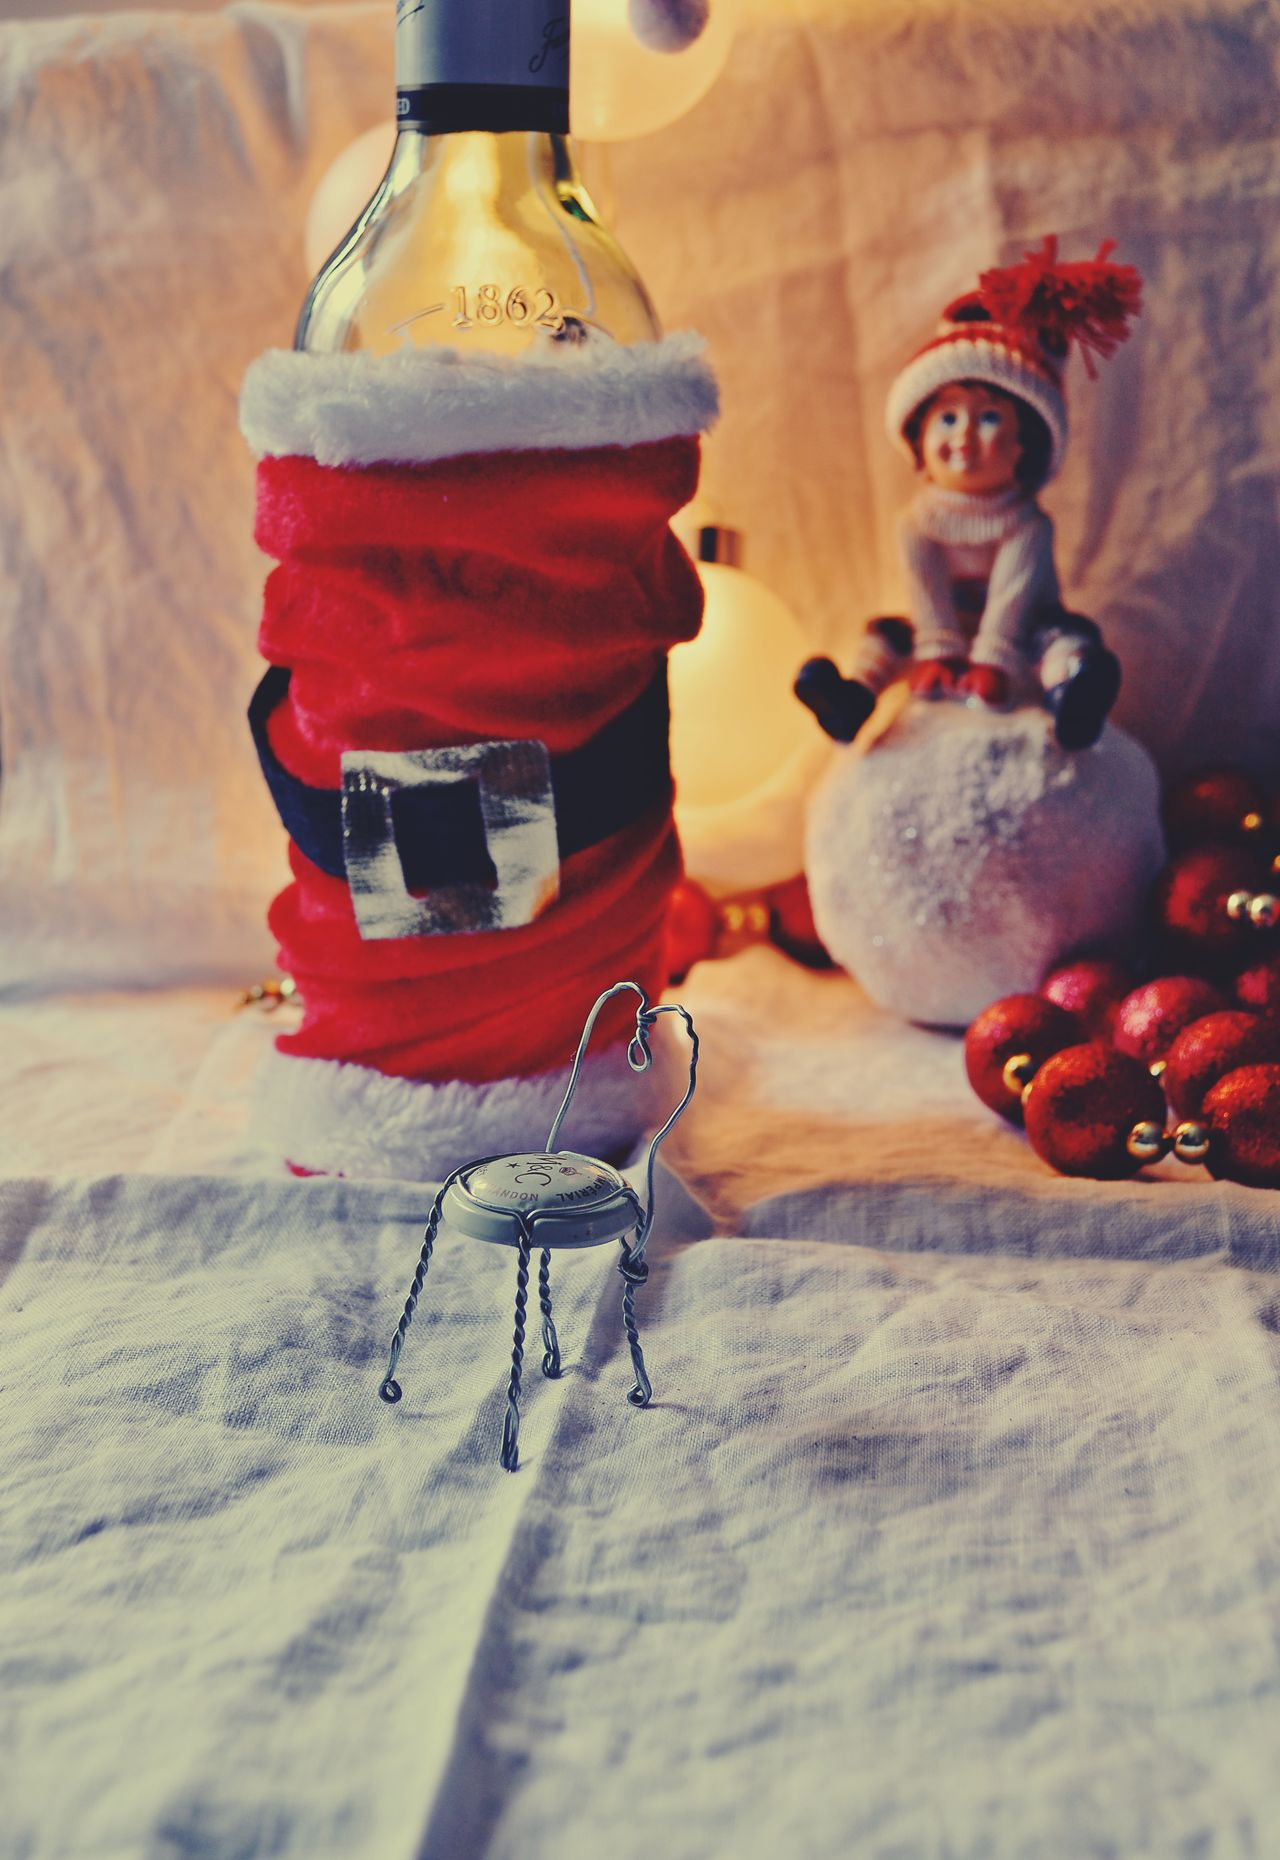 Bottle Christmas Christmas Decoration Christmas Lights Christmas Spirit Close-up Day Dolls Indoors  No People Santa Costume Table Toy Pinup Style BYOPaper!